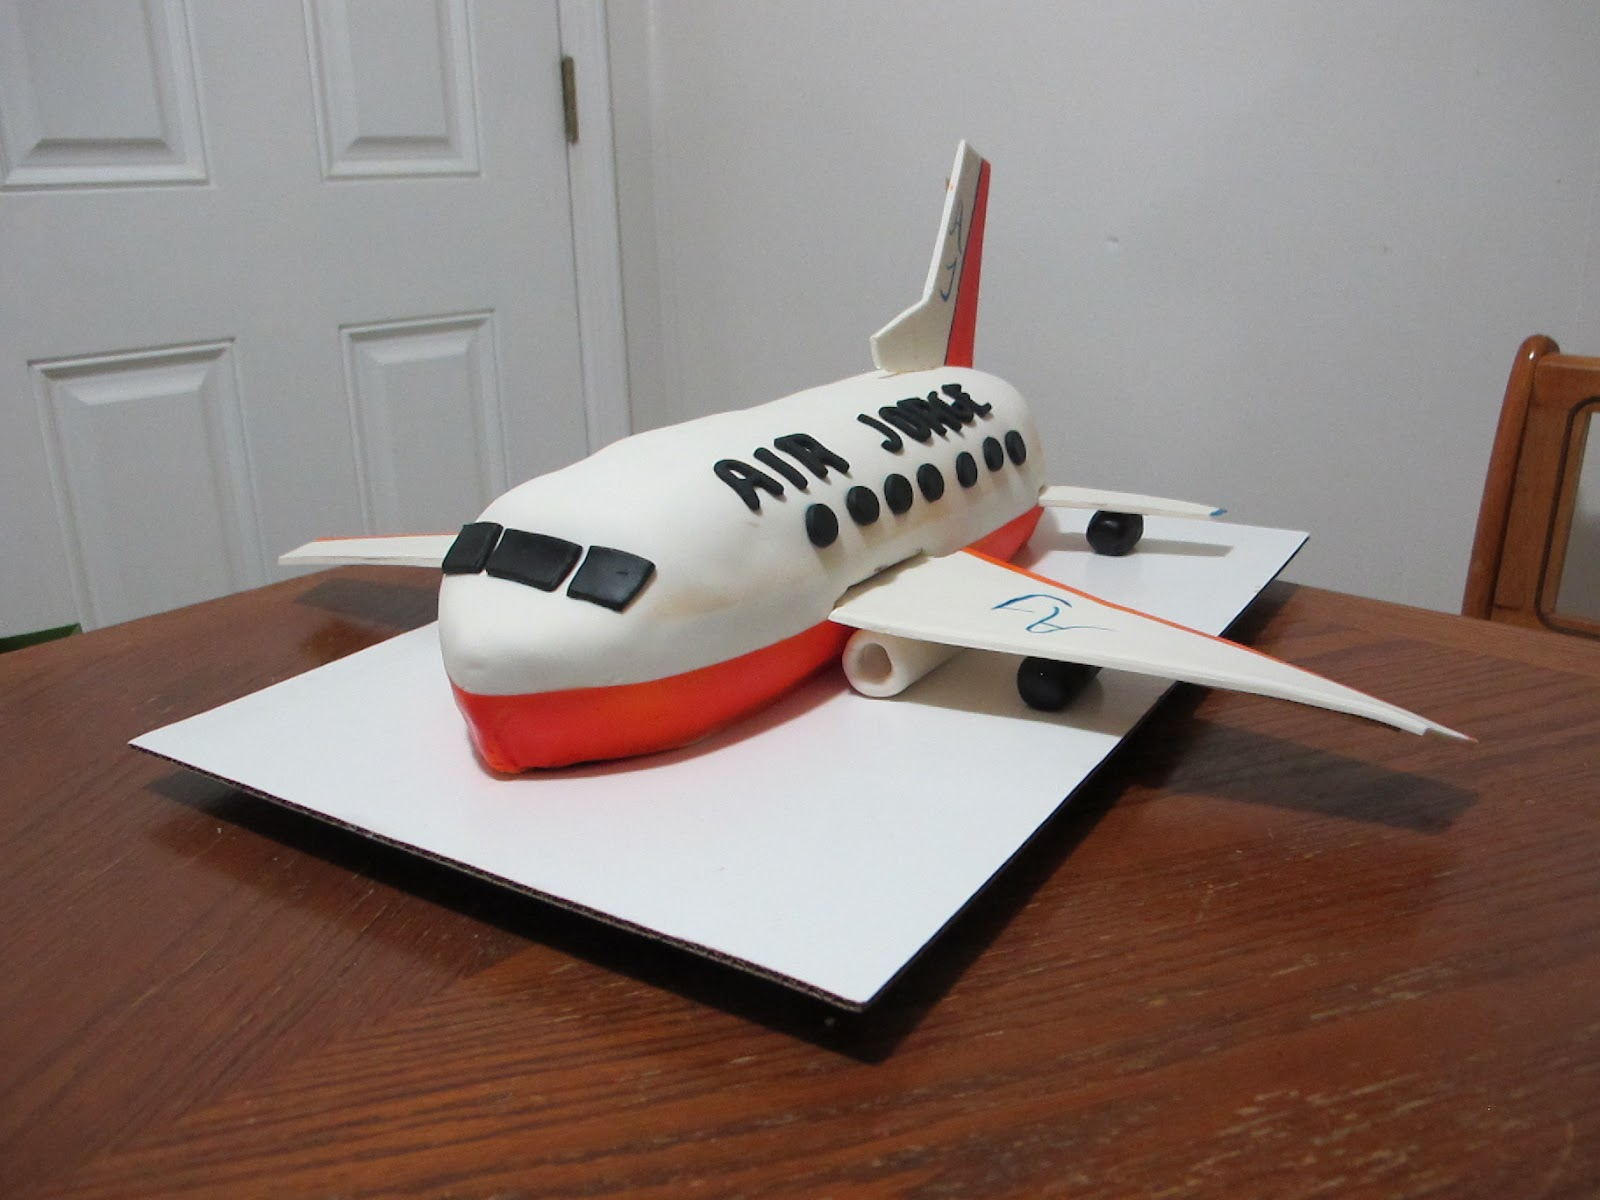 Pin Boeing 747 3g1 Aircraft Picture Cake On Pinterest